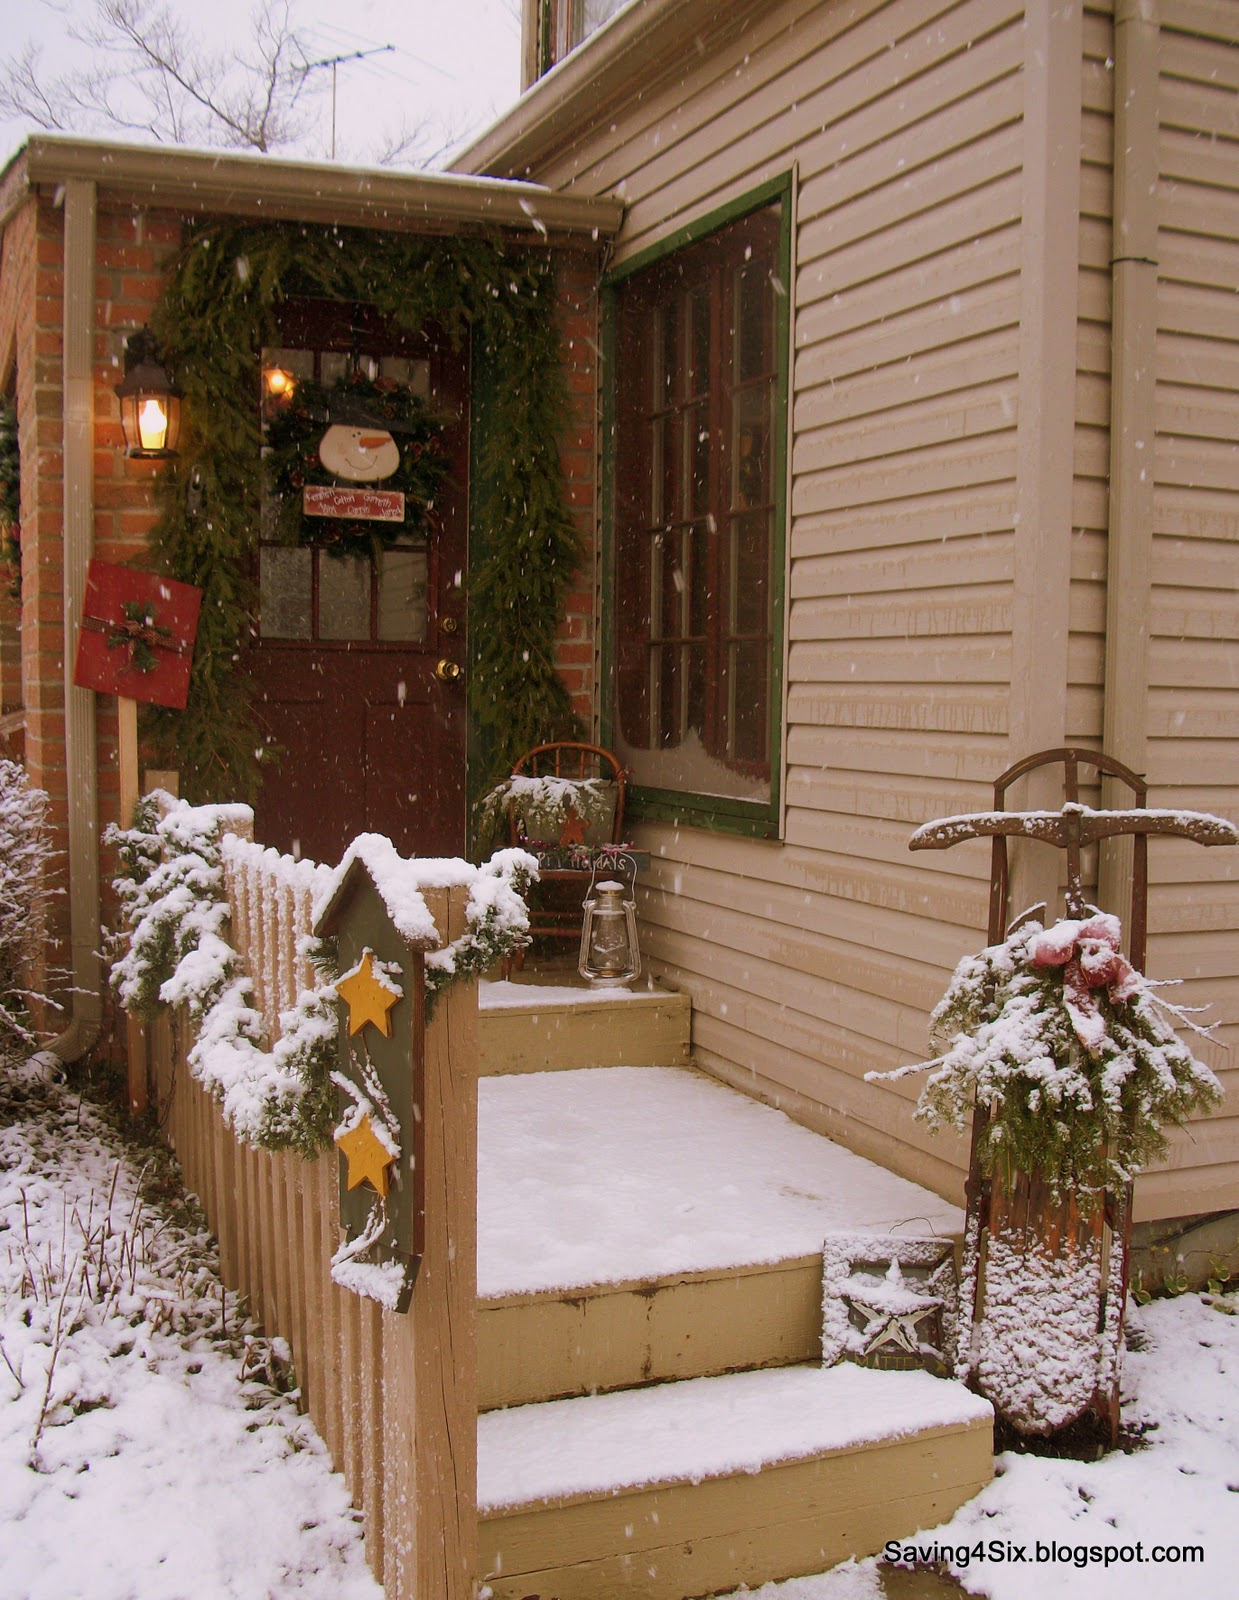 Decorating my porch for christmas for Decorating a small front porch for christmas